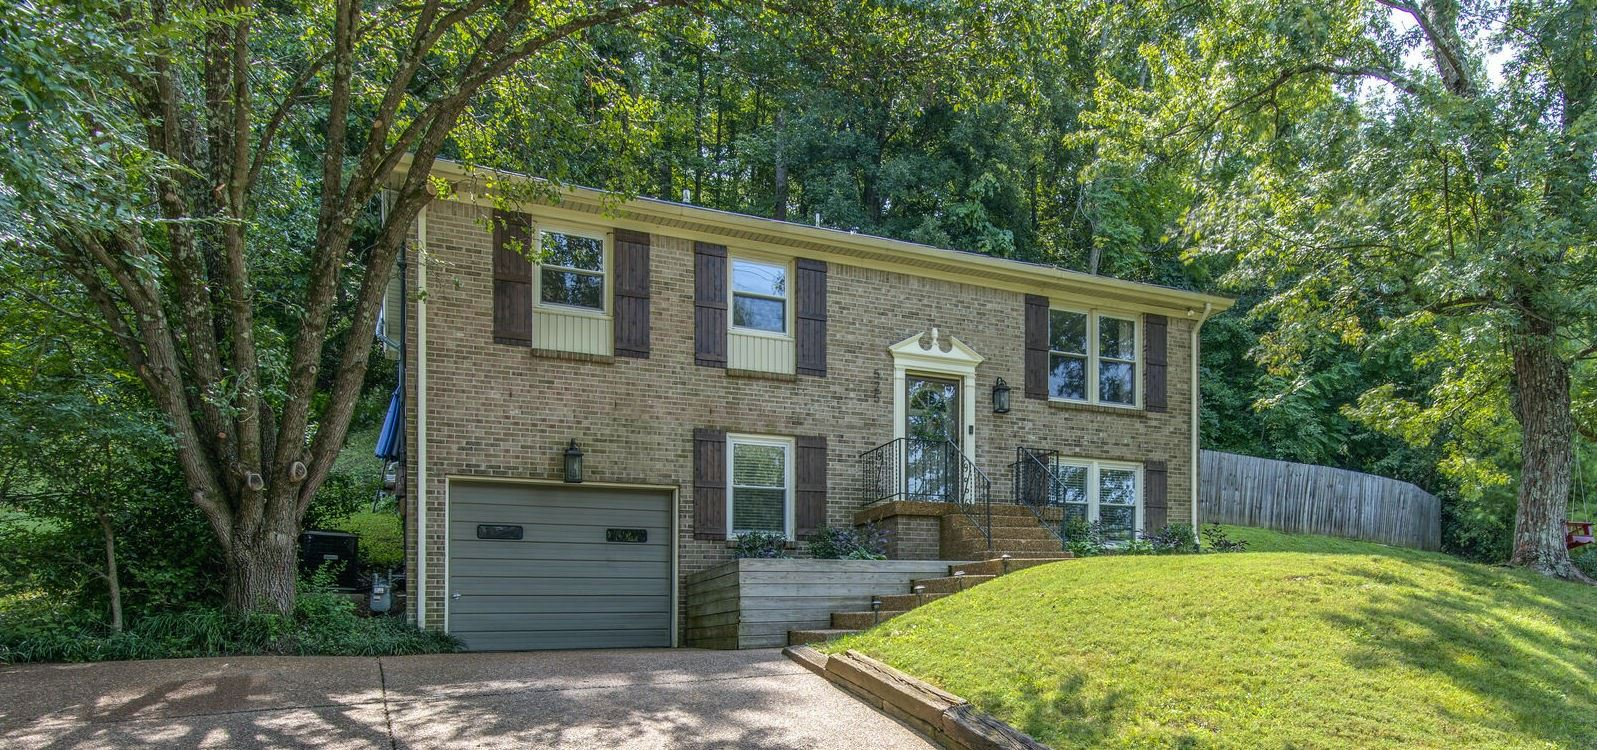 525 Holt Valley Rd, Nashville, TN 37221 - MLS#: 2188161